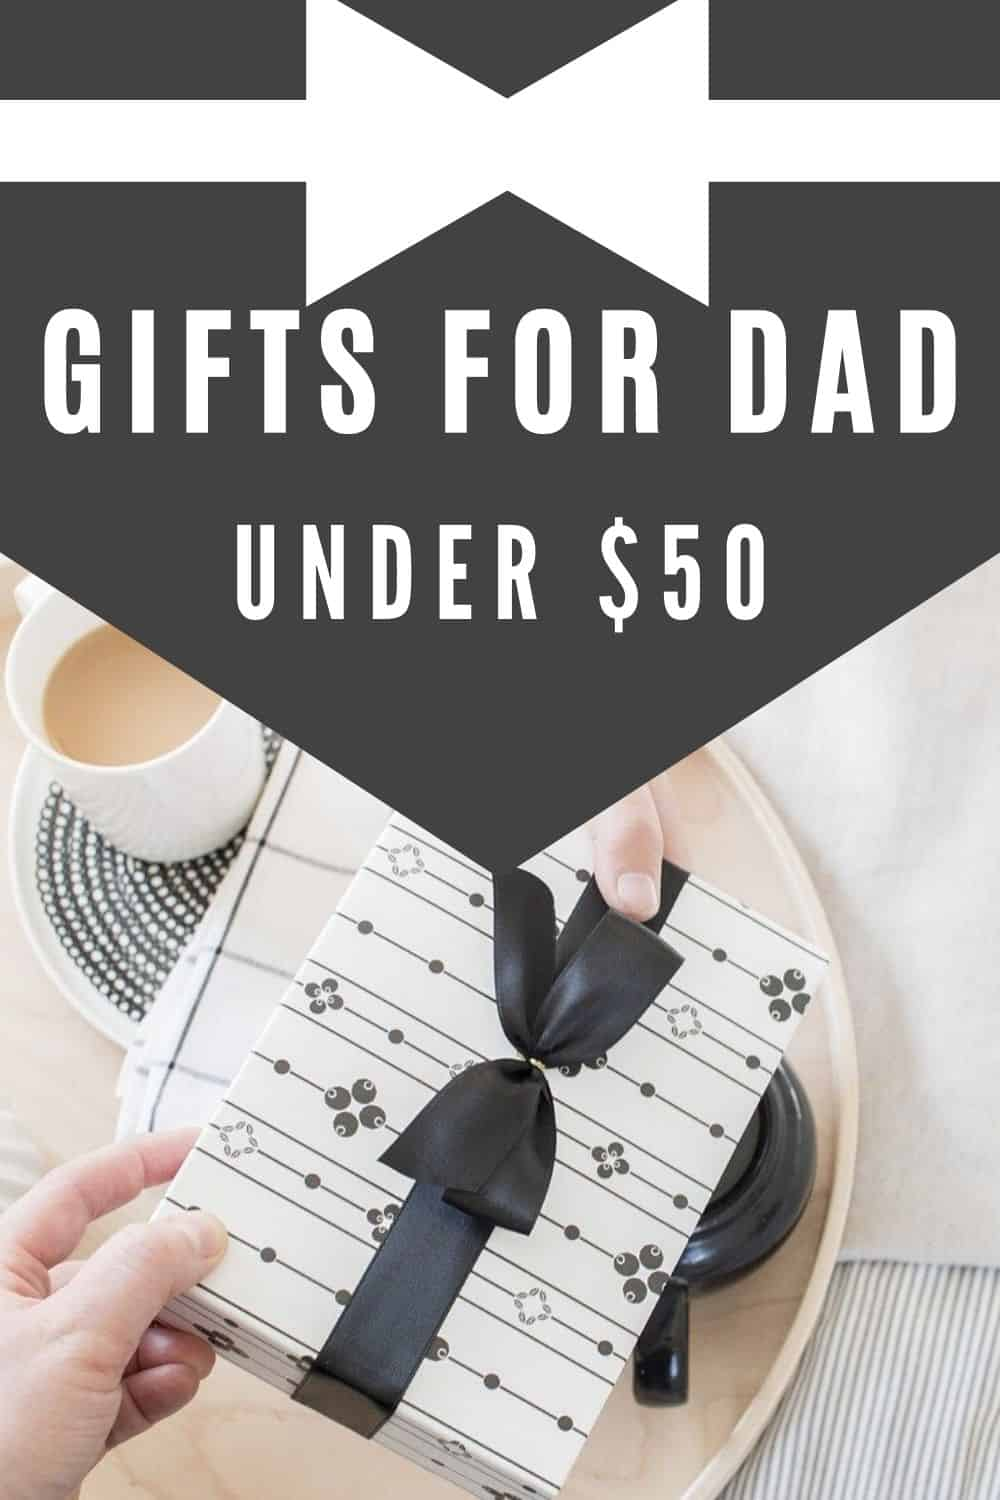 Gifts for Dad Under $50 - Budget Friendly Gift Ideas for Dad